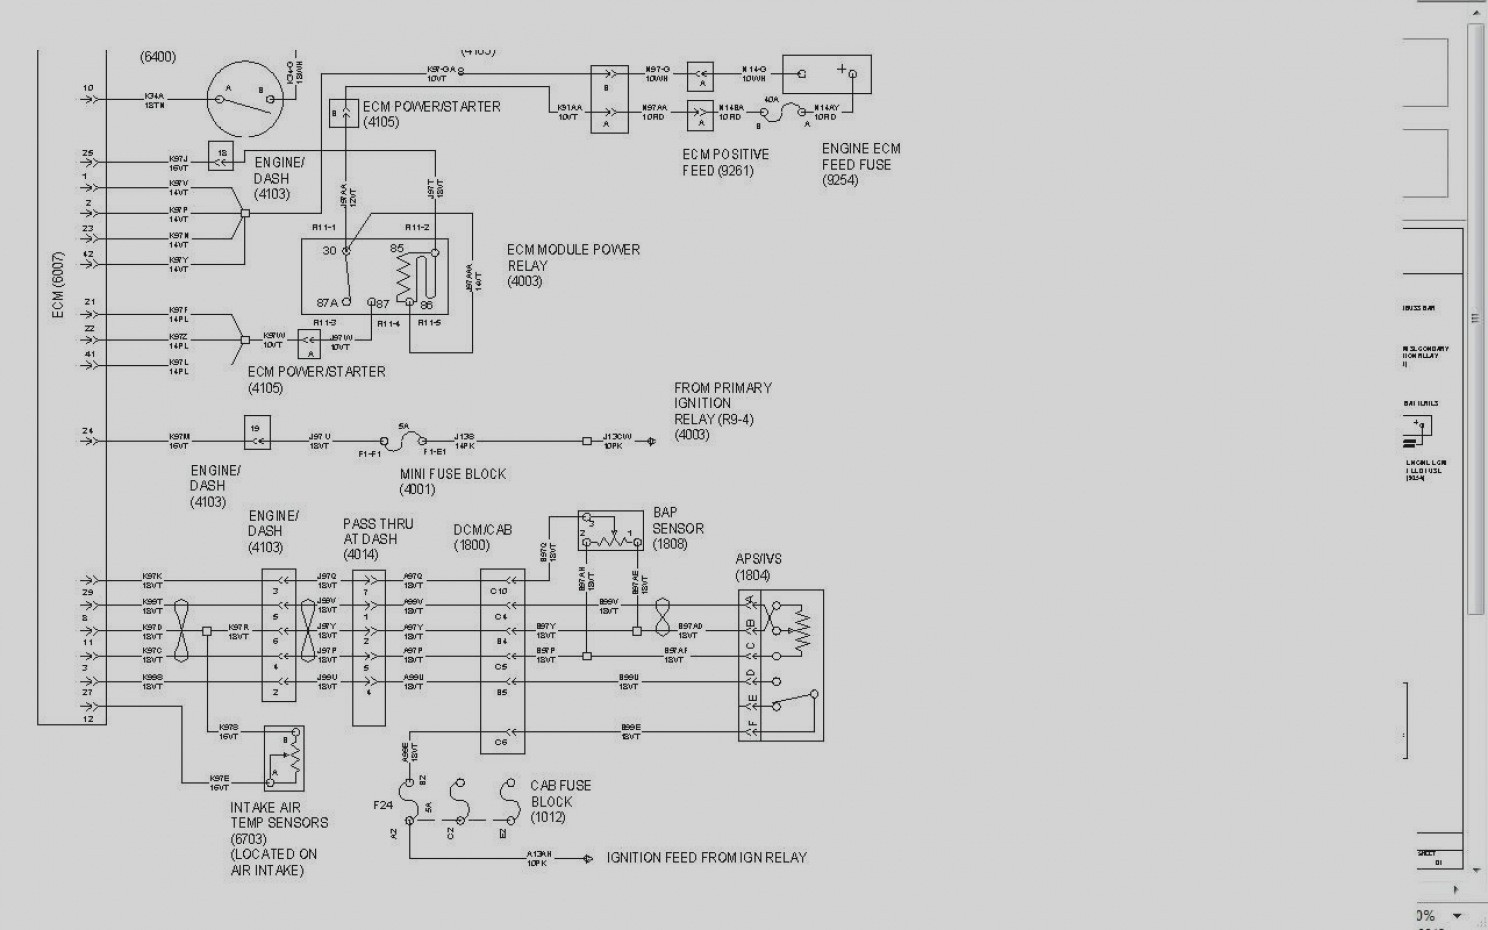 hight resolution of 2007 international 4300 fuse box diagram wiring diagram blog 2006 international 7600 fuse box 2006 international fuse box